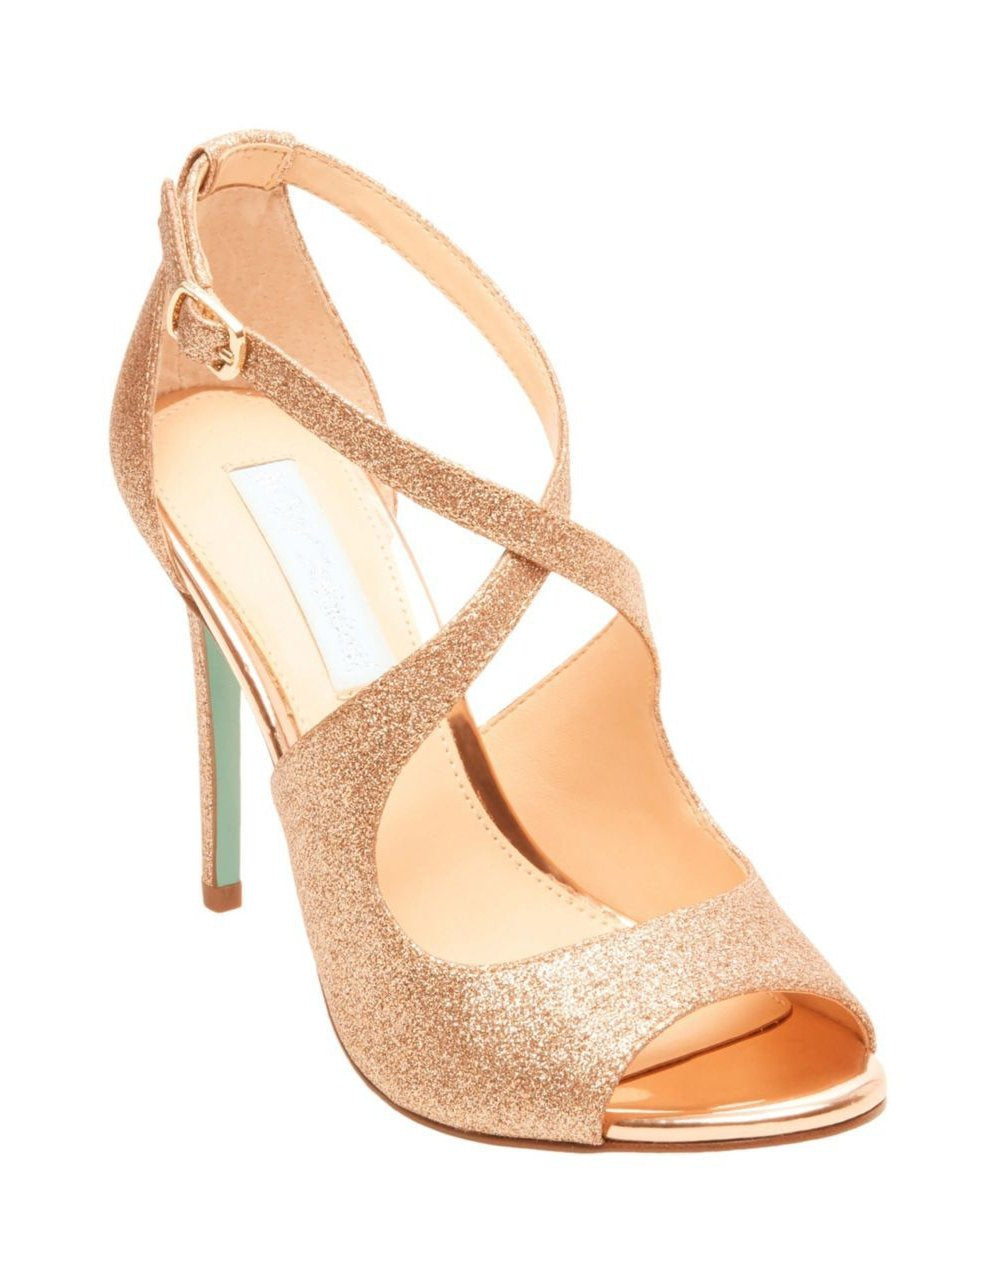 SB-TACIE GOLD GLITTER - SHOES - Betsey Johnson